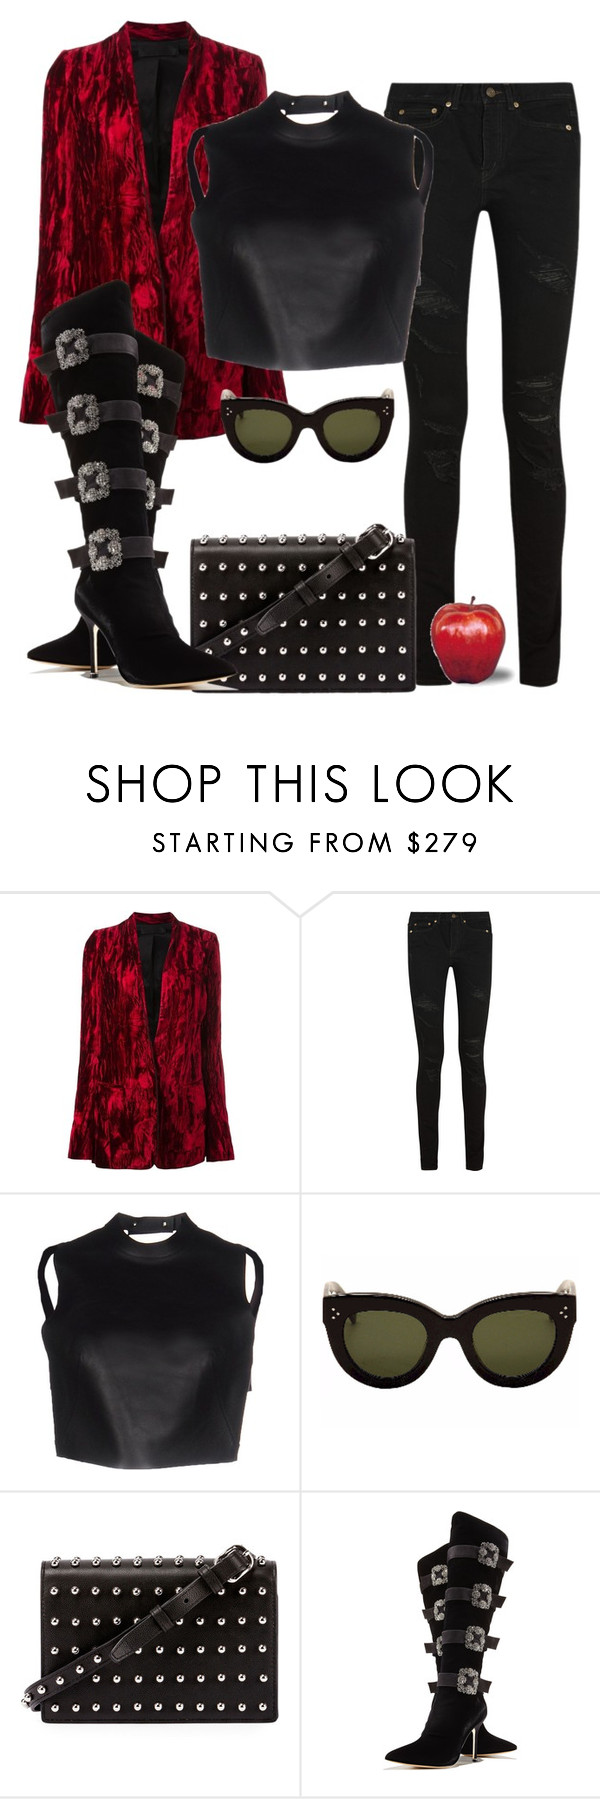 """Untitled #2486"" by applelula ❤ liked on Polyvore featuring Haider Ackermann, Yves Saint Laurent, Alexander Wang, CÉLINE and Manolo Blahnik"